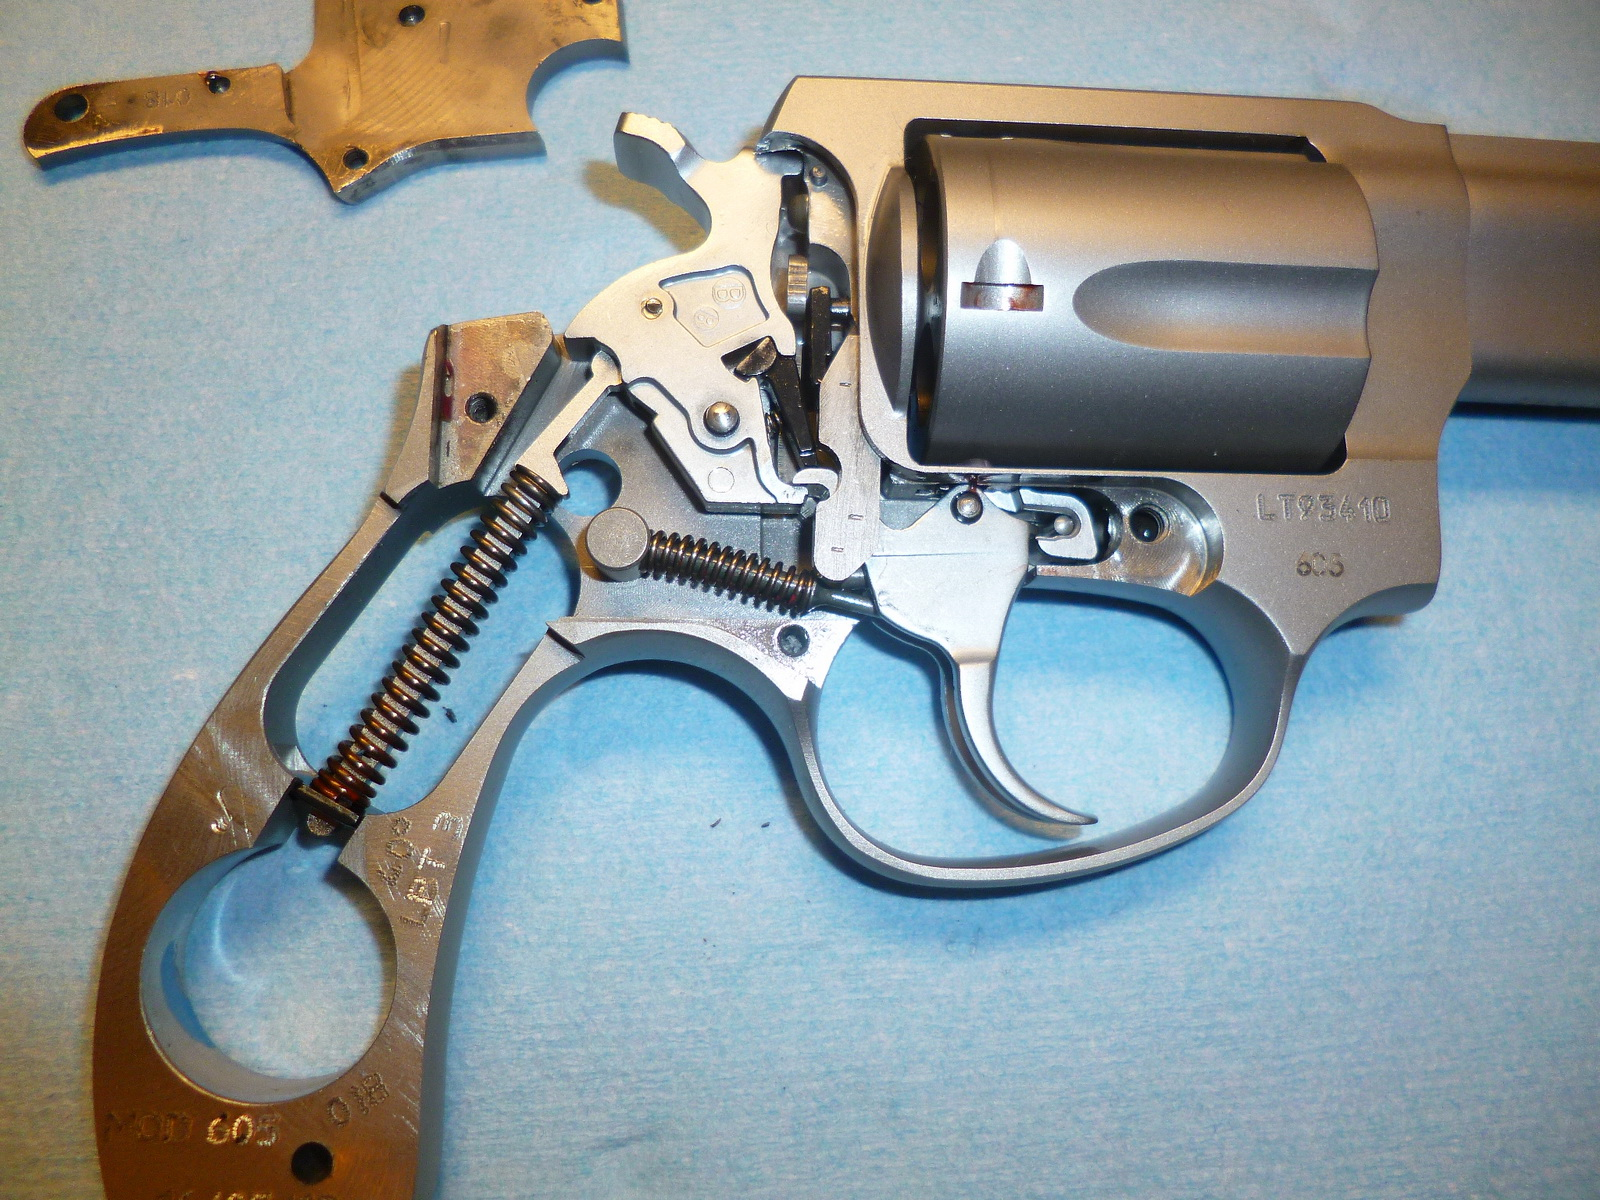 Taurus 605 Stainless review - Is it a workhorse or a boudoir revolver